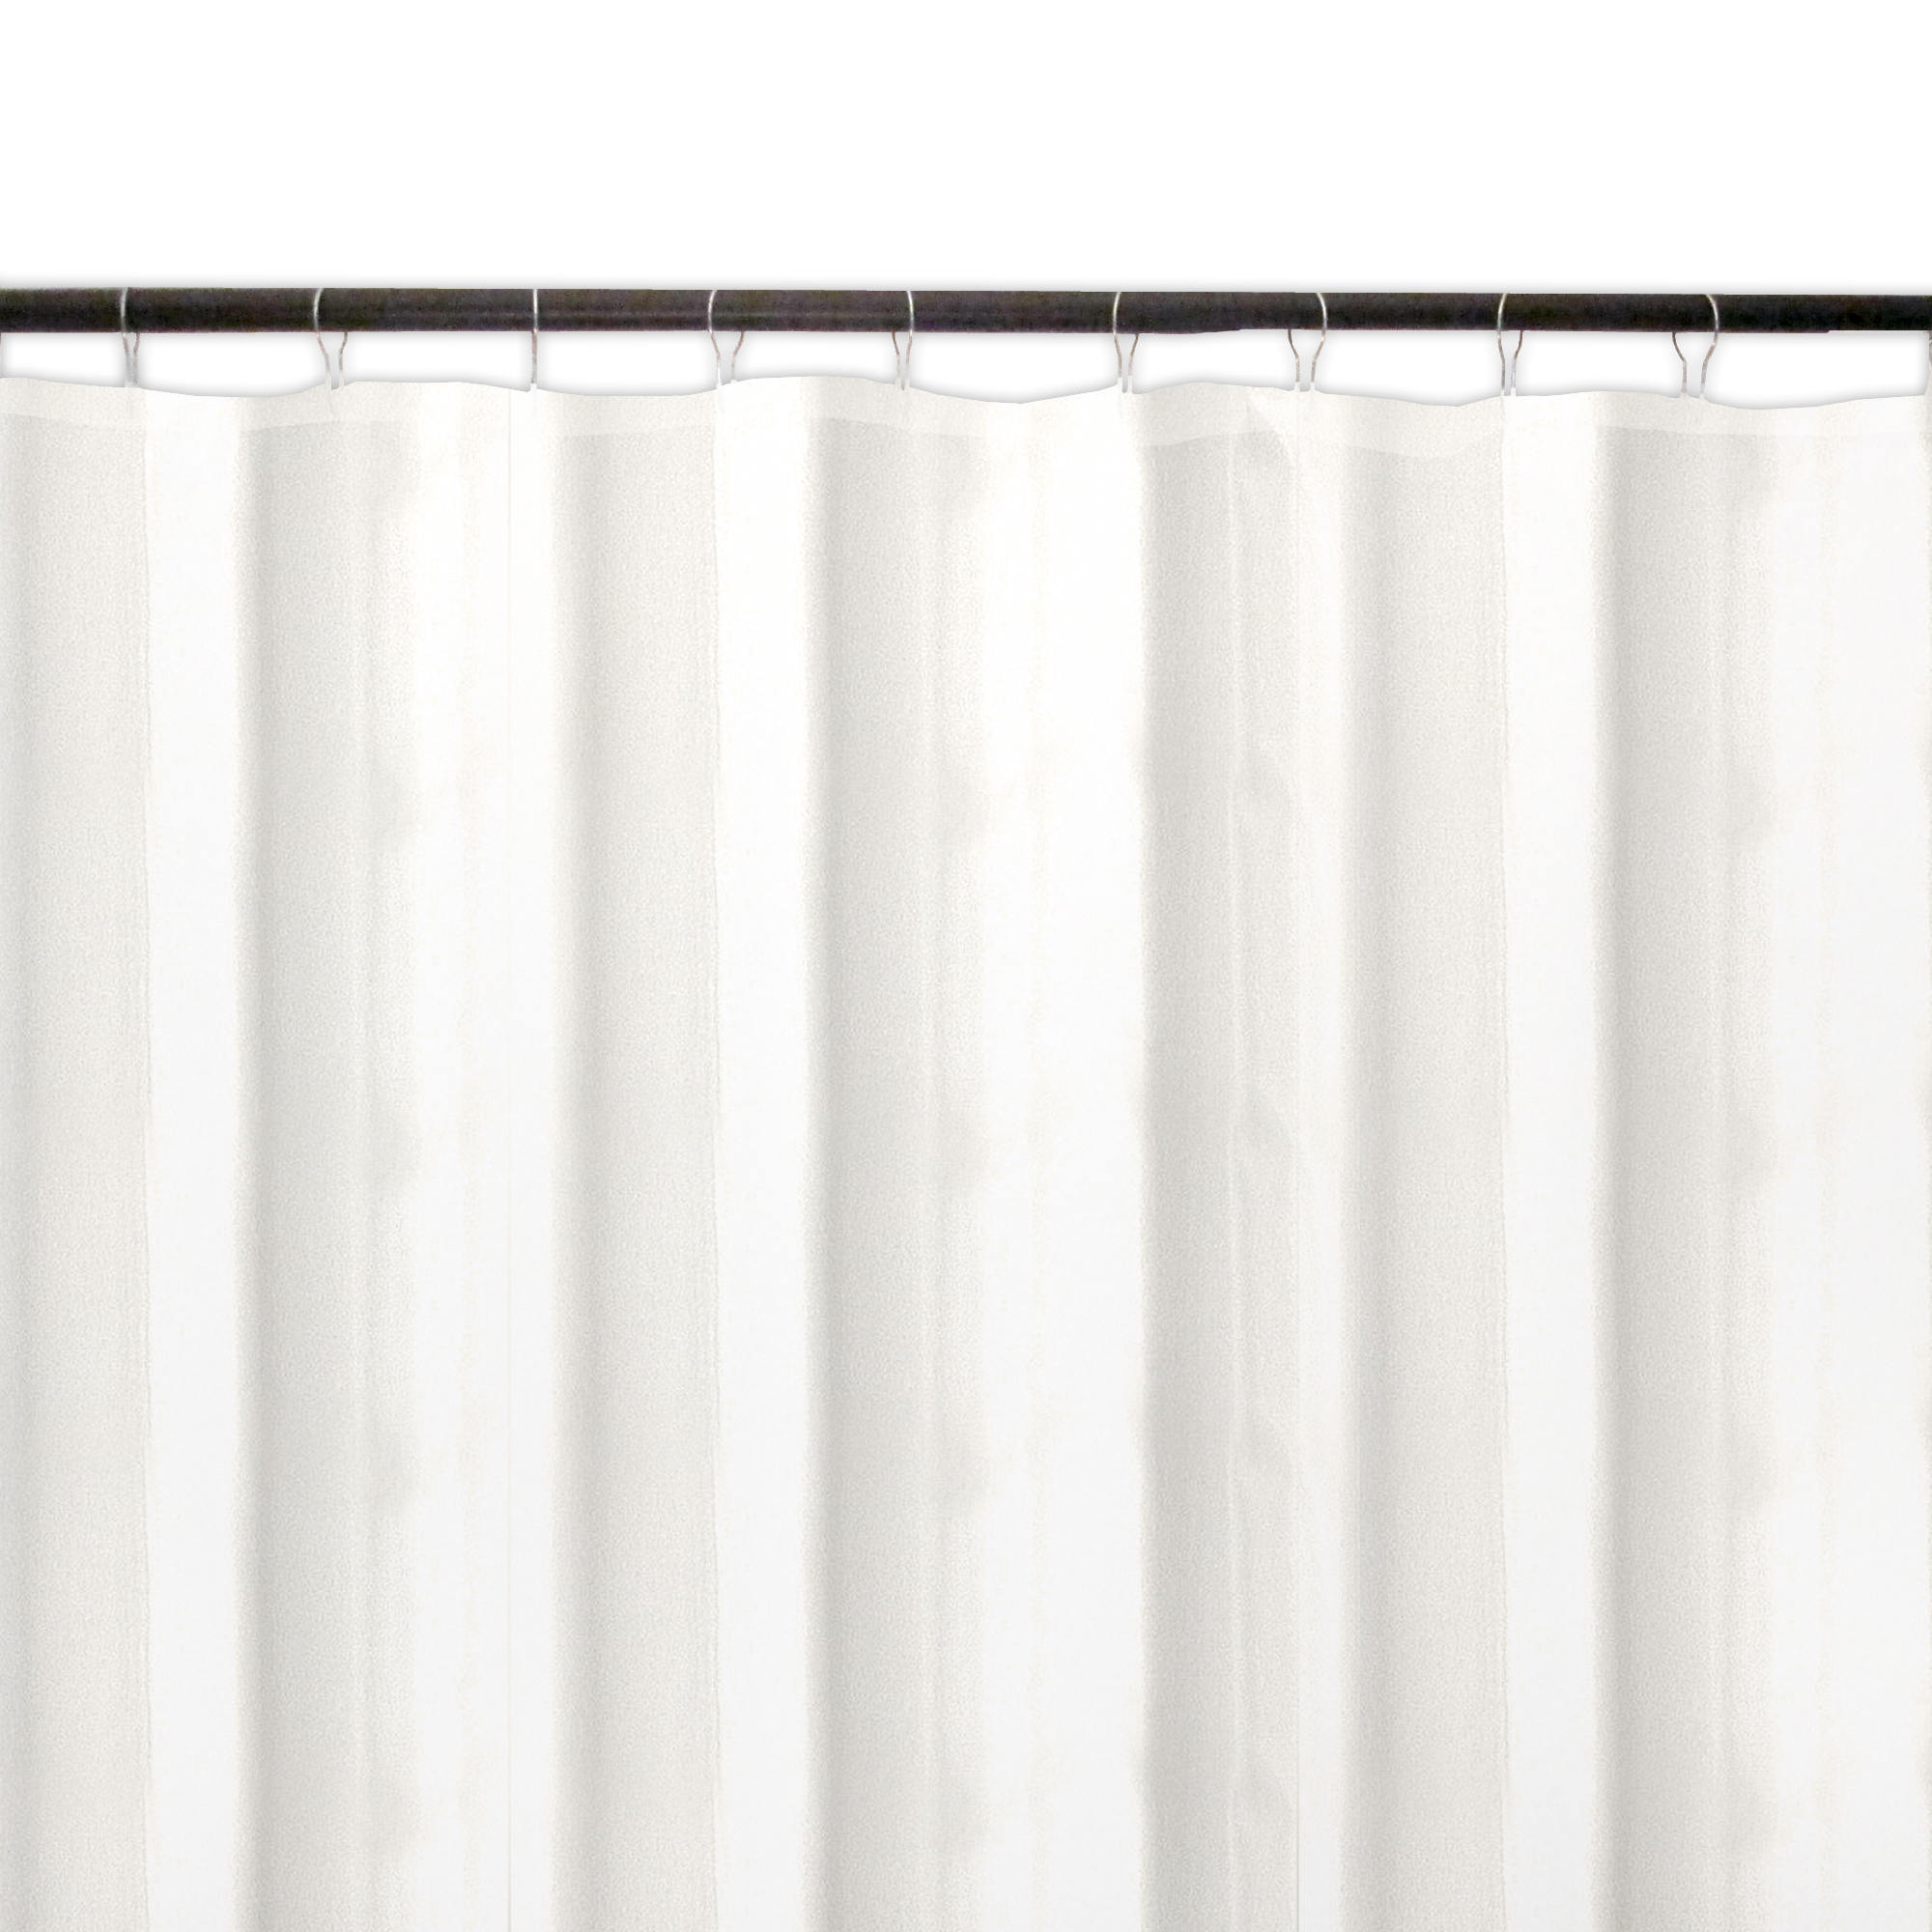 Veratex Liners Shower Curtain Liner